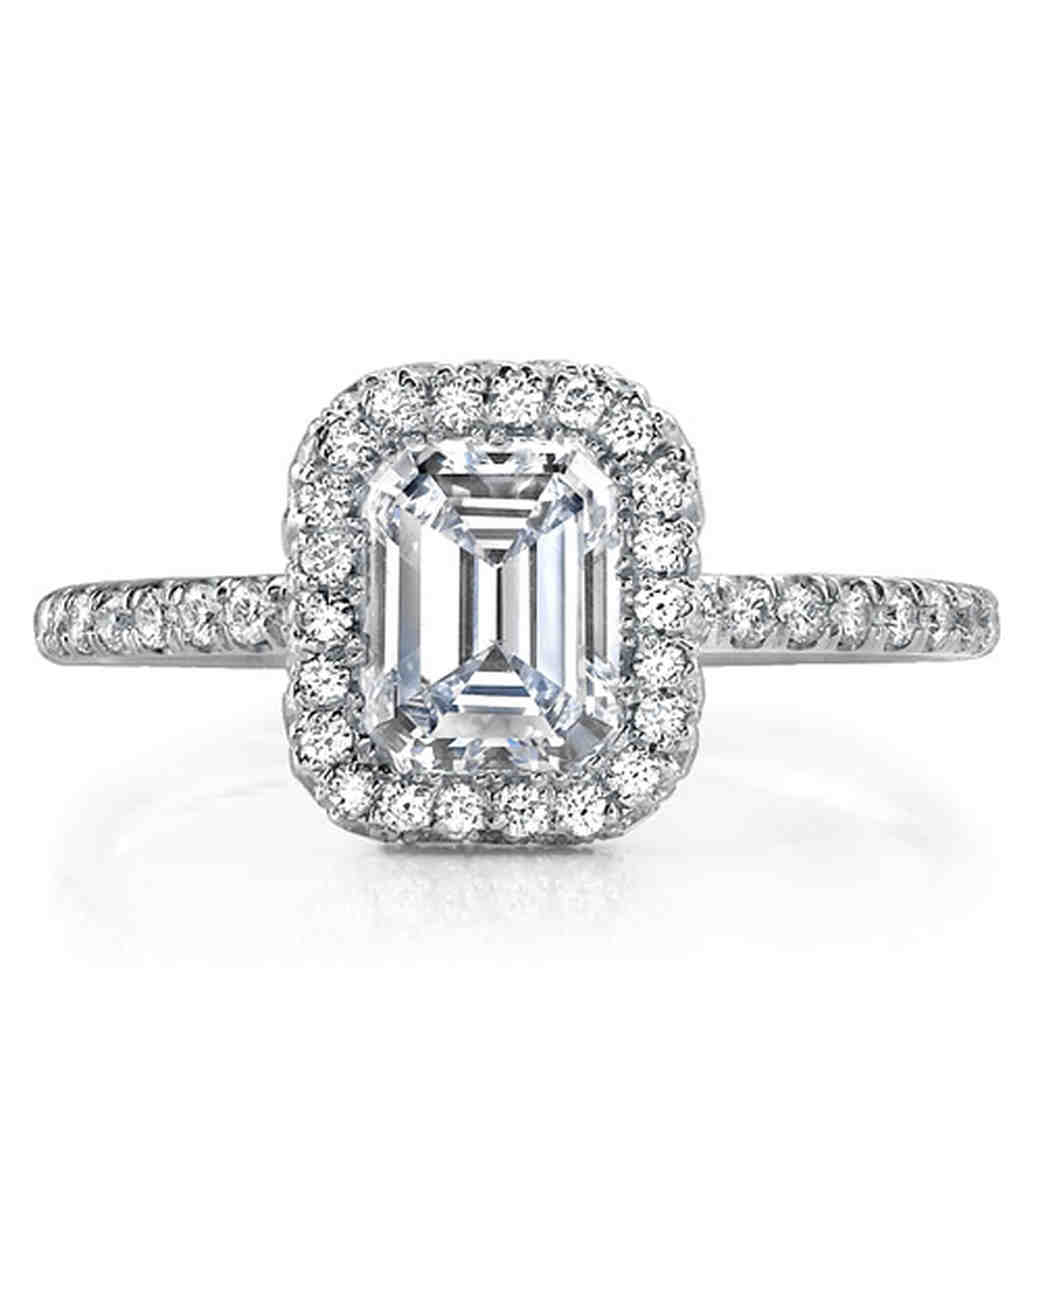 Jean Dousset Emerald-Cut Engagement Ring